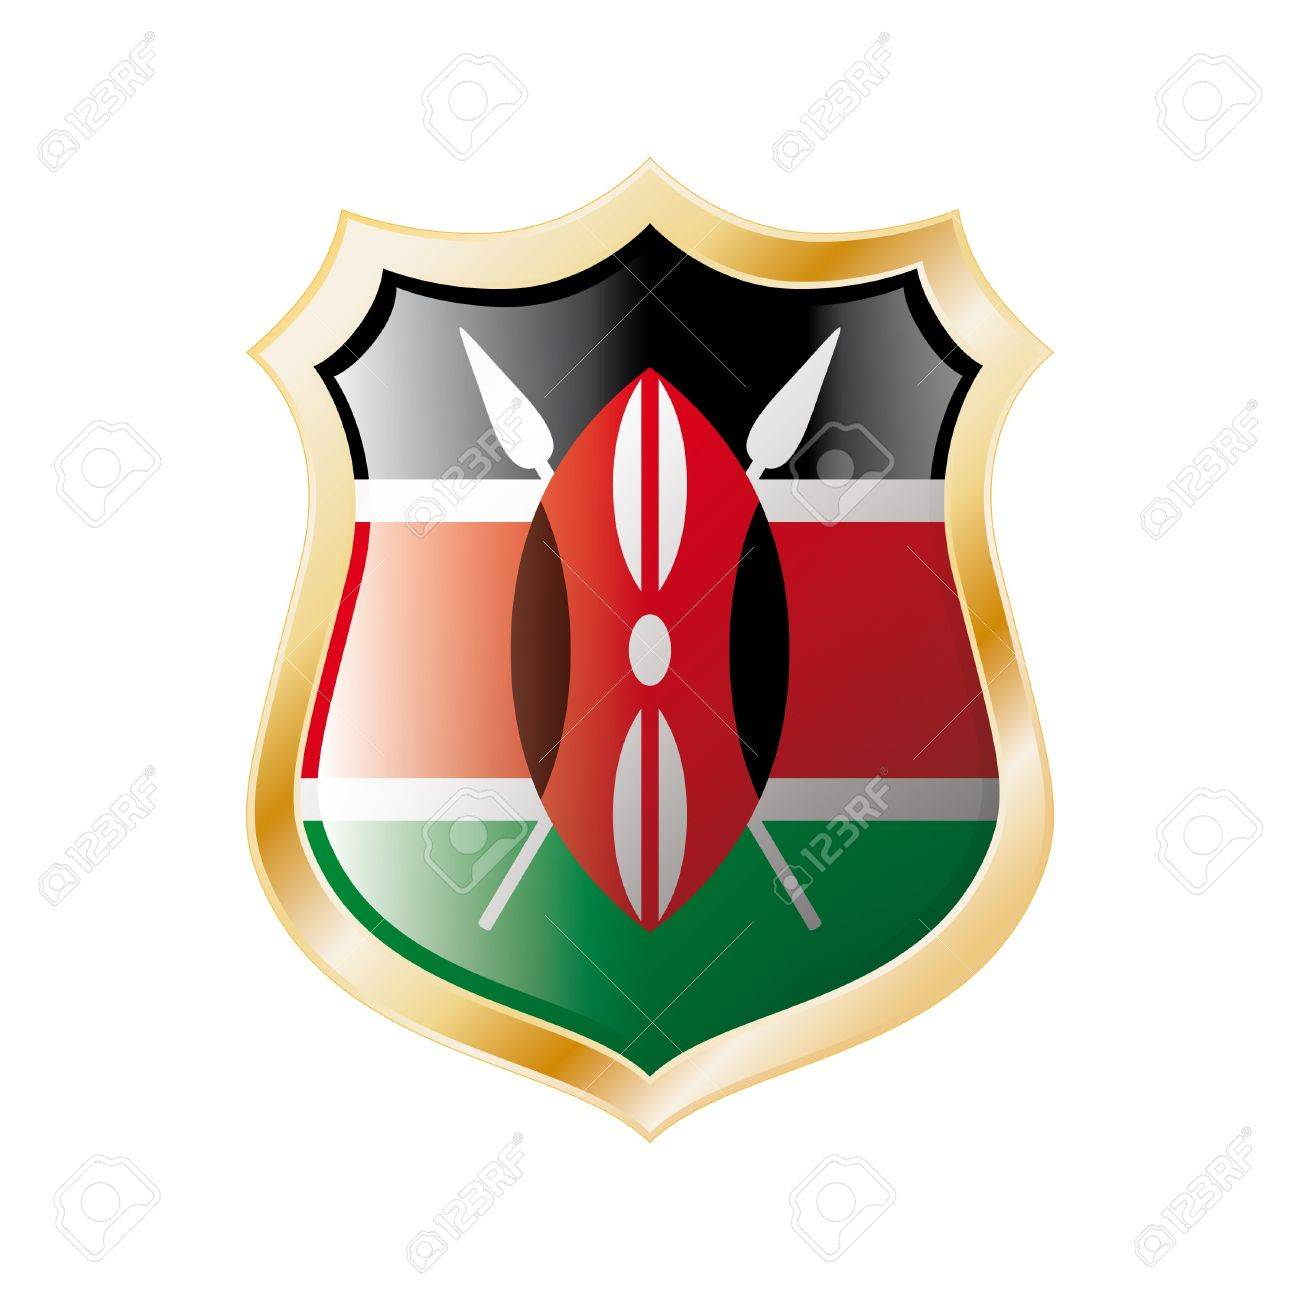 Kenya flag on metal shiny shield  illustration. Collection of flags on shield against white background. Abstract isolated object. Stock Illustration - 7117711